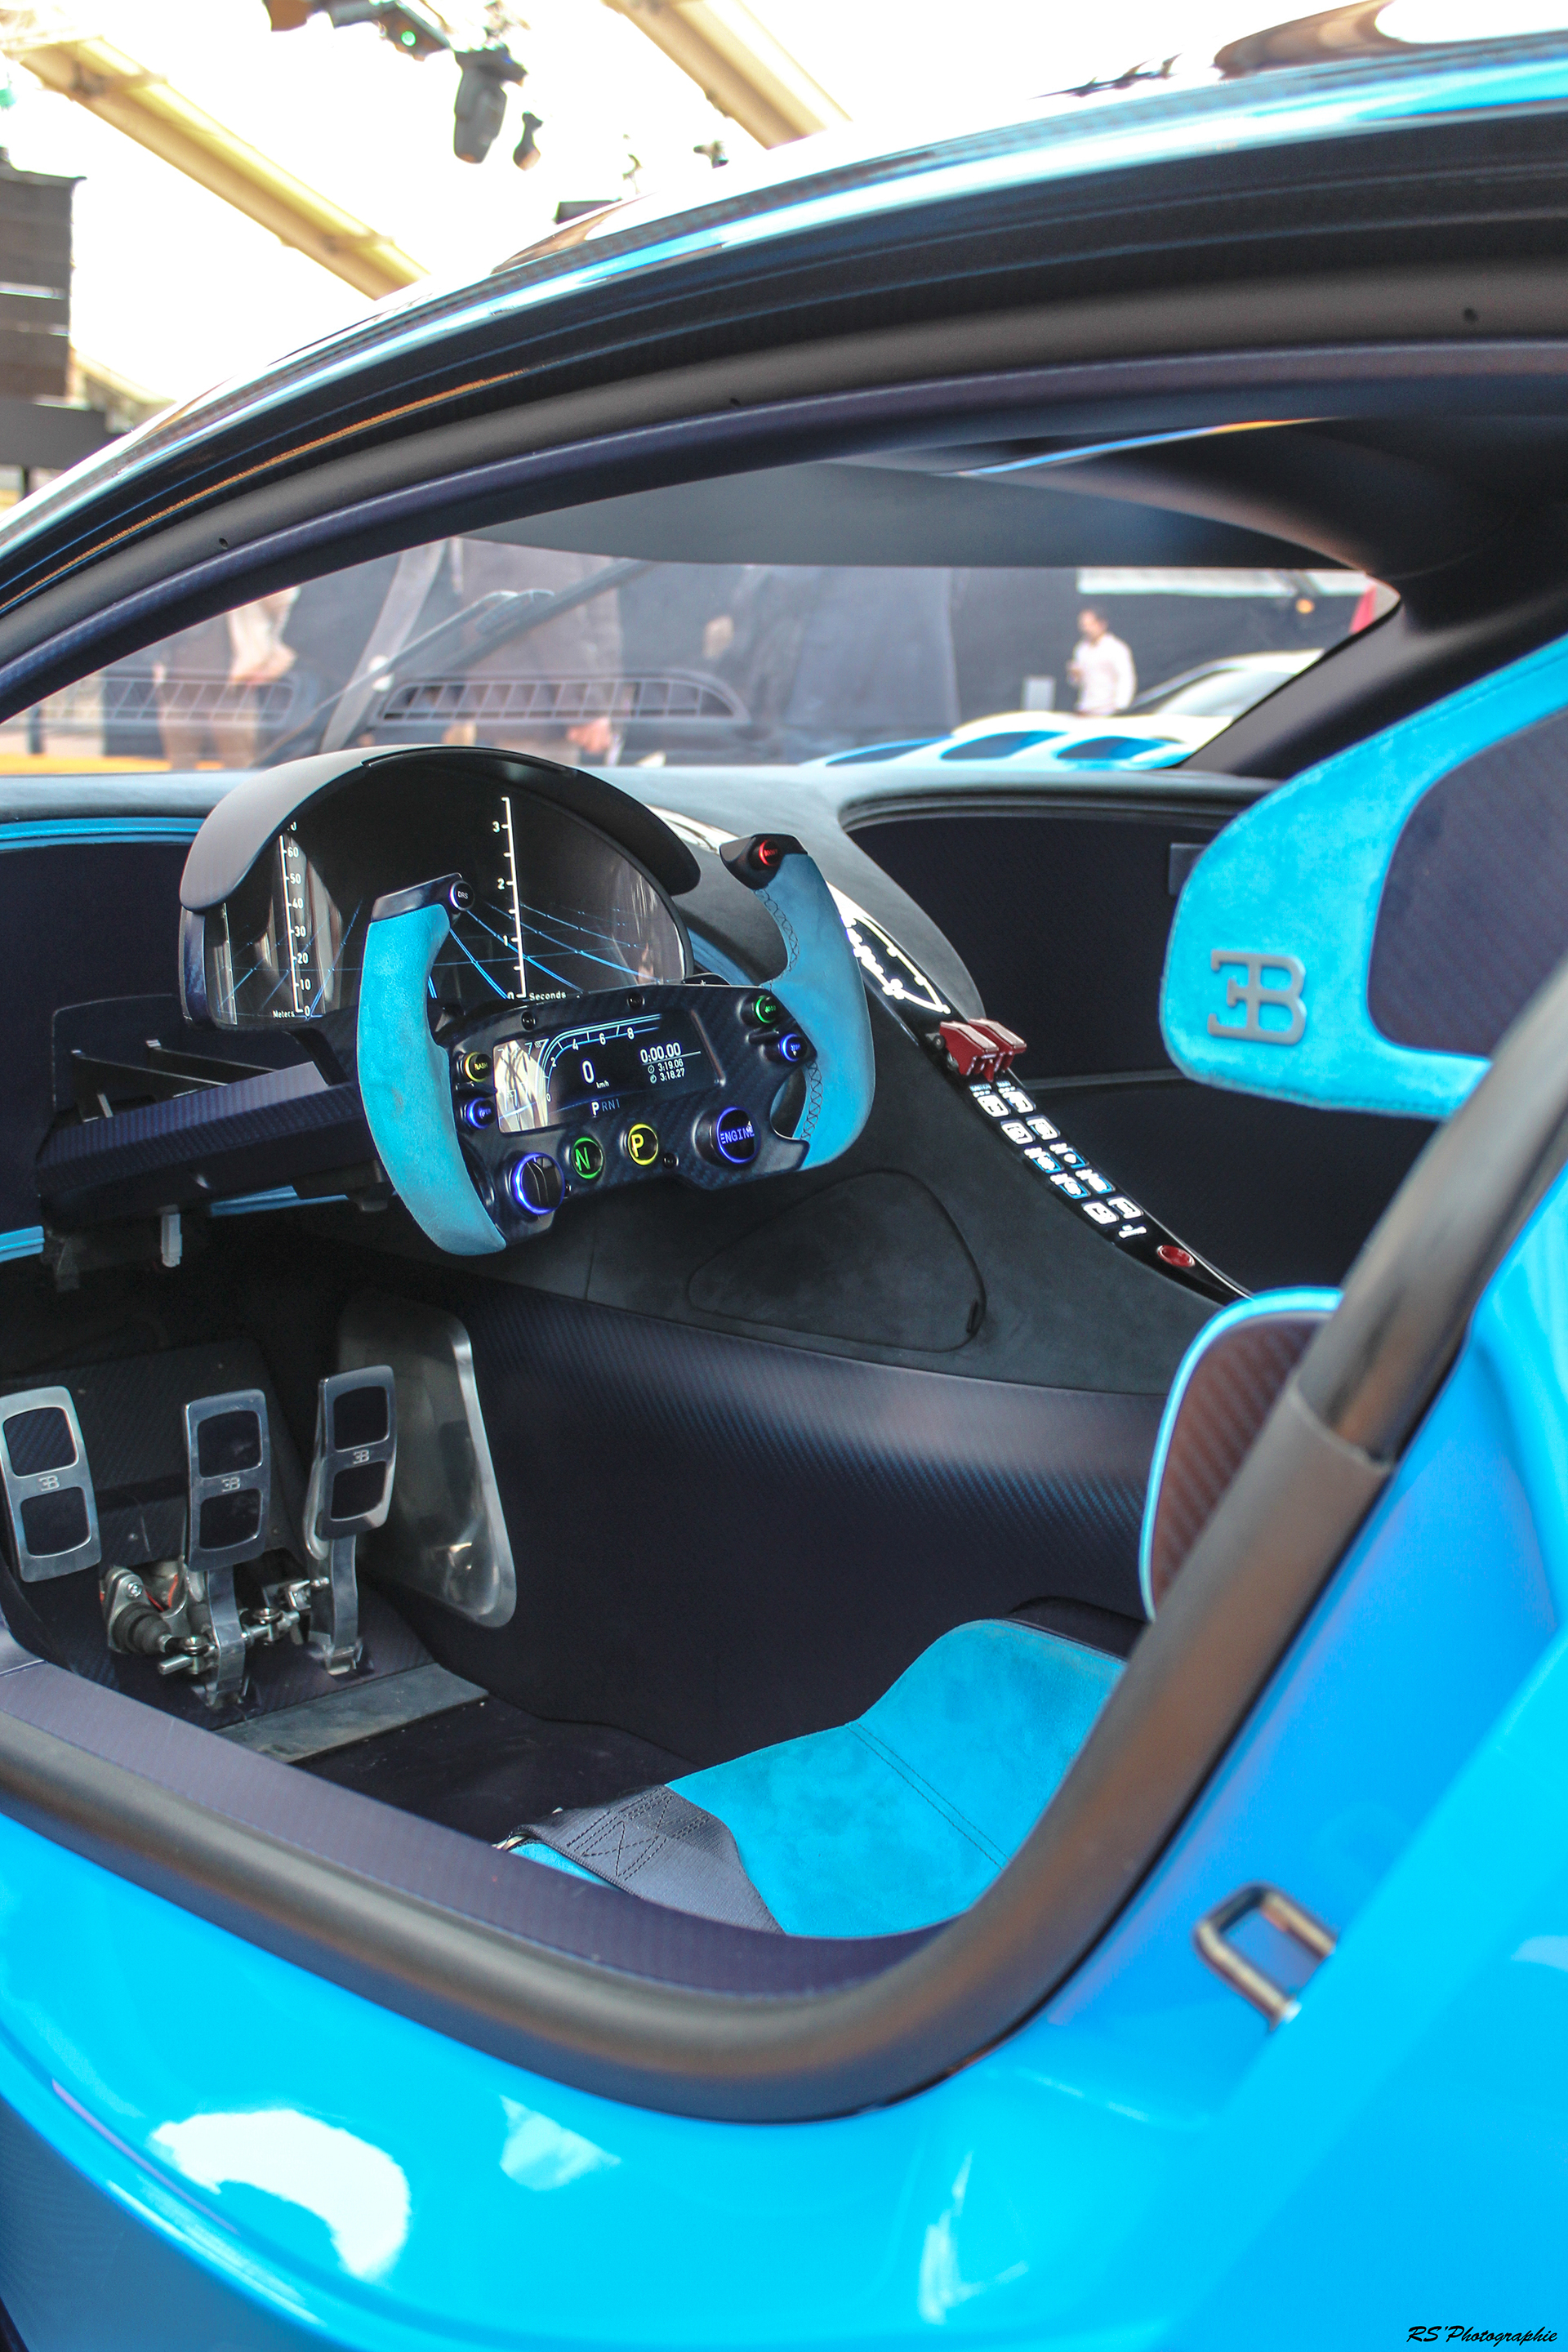 Bugatti Vision Gran Turismo - intérieur / interior - Exposition Concept cars 2016 - Arnaud Demasier RS Photographie